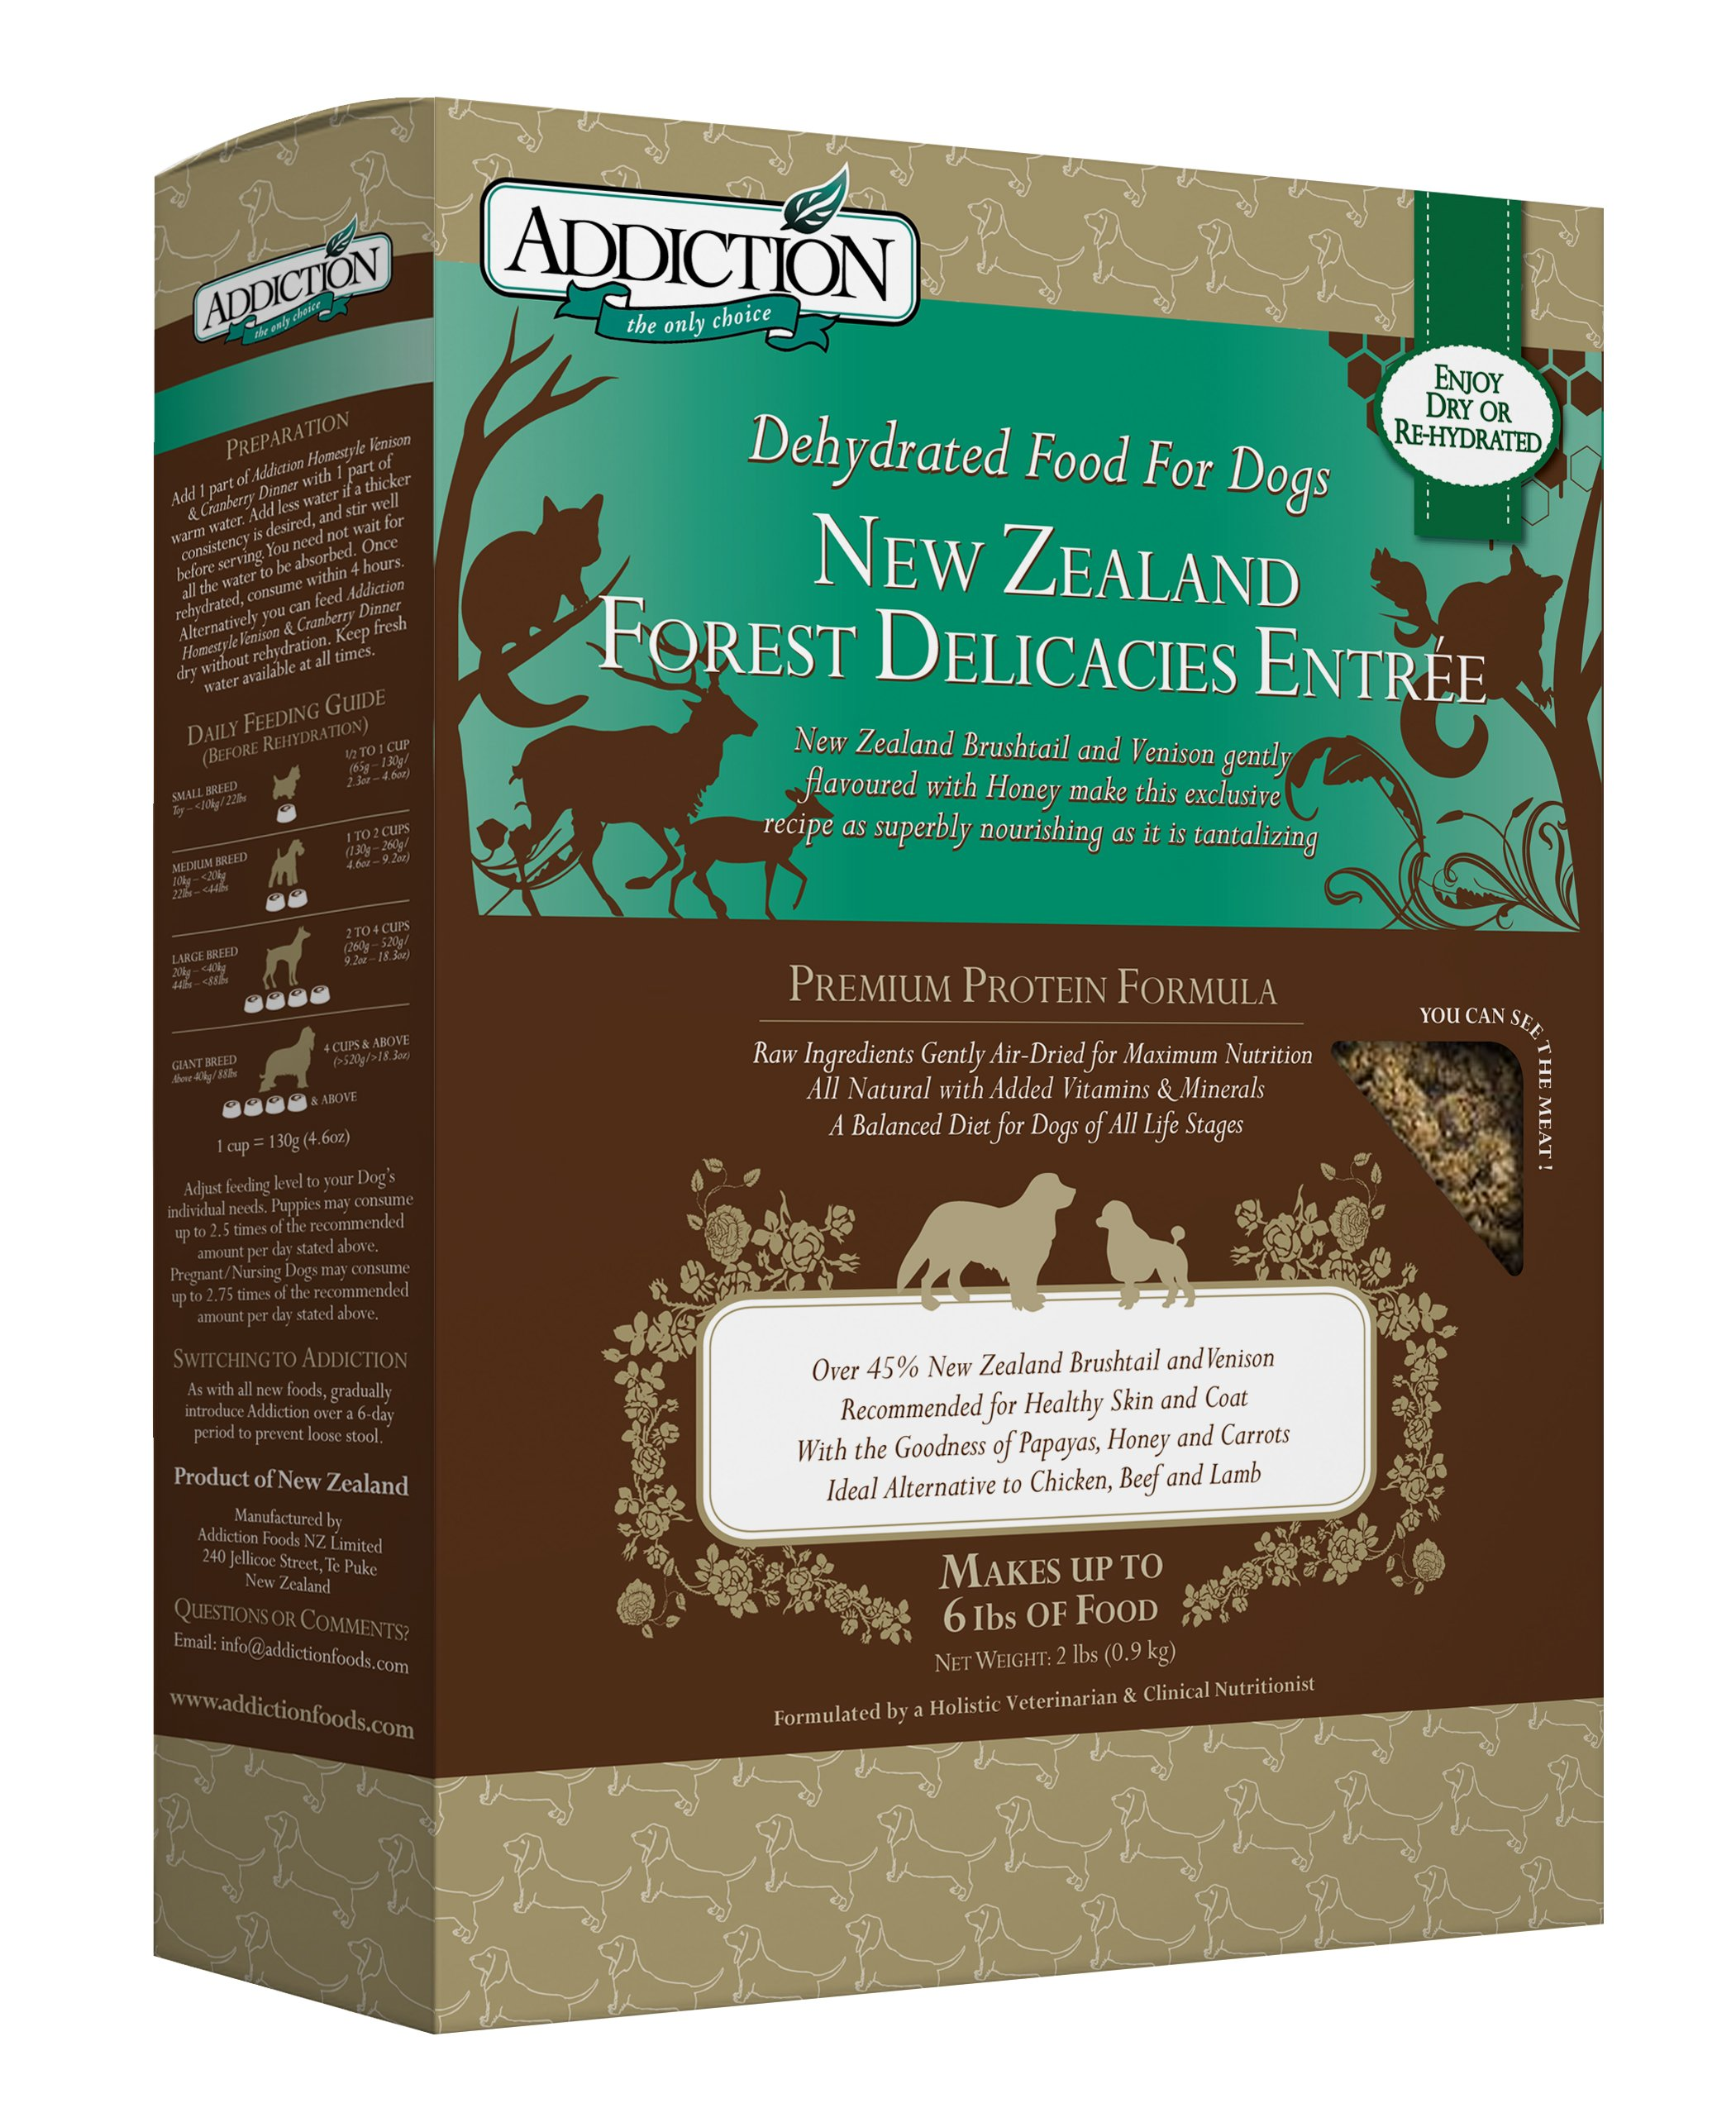 Addiction New Zealand Forest Delicacies Filler Free Dehydrated Dog Food, 2 Lb. by Addiction Pet Foods